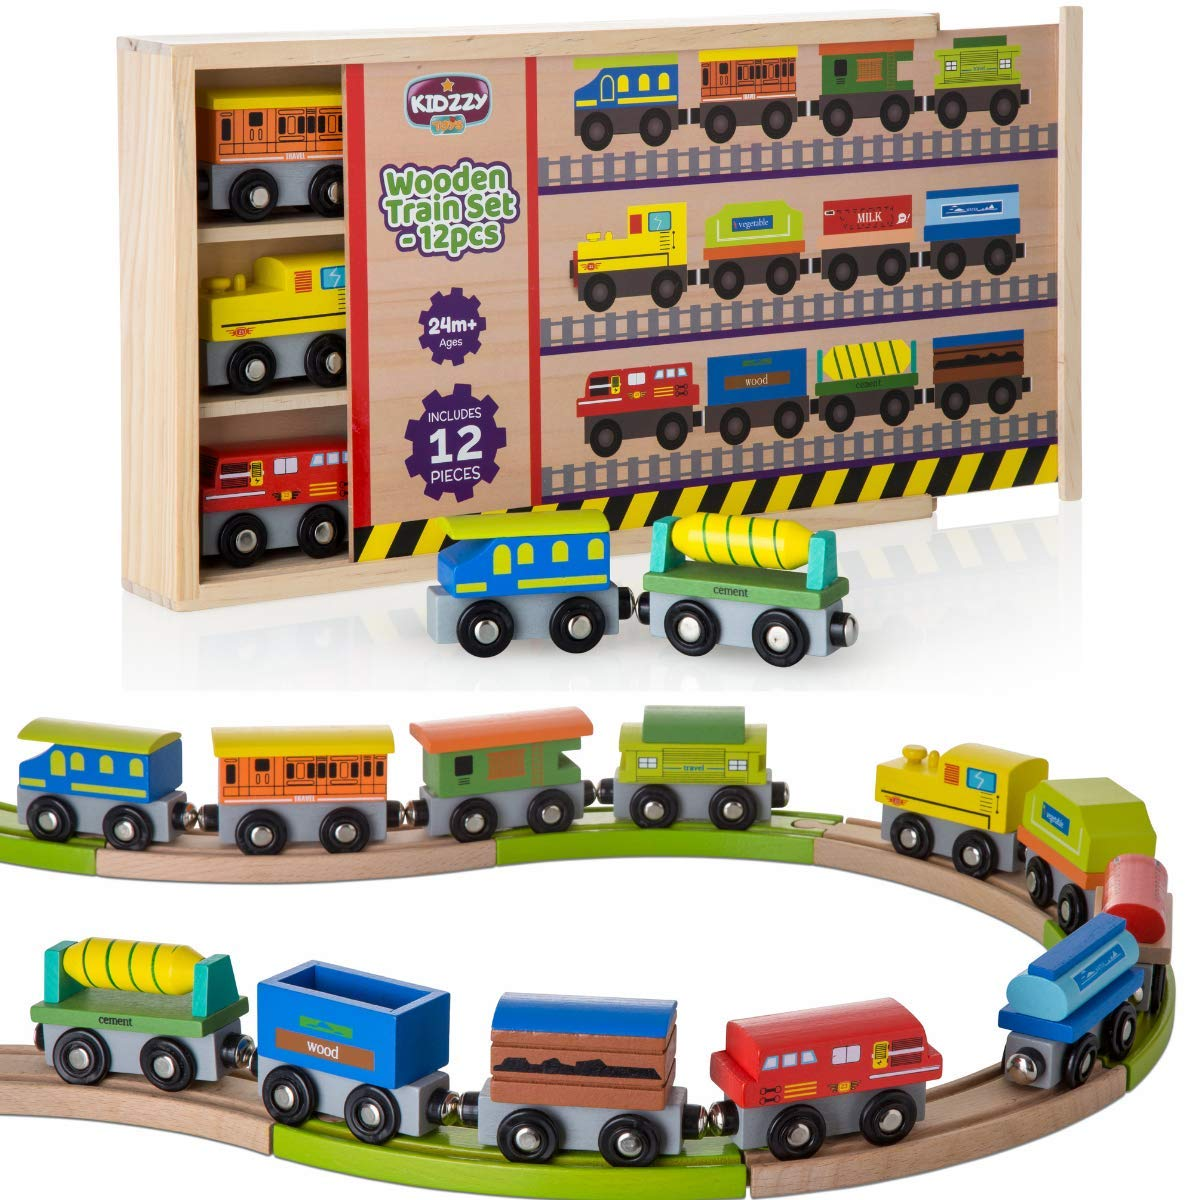 Wooden Train Set 12 PCS Box with Cover - Train Toys Magnetic Set - Toy Train Sets for Kids Toddler Gift for Christmas and Birthday Gift for Boys by Kidzzy Toys